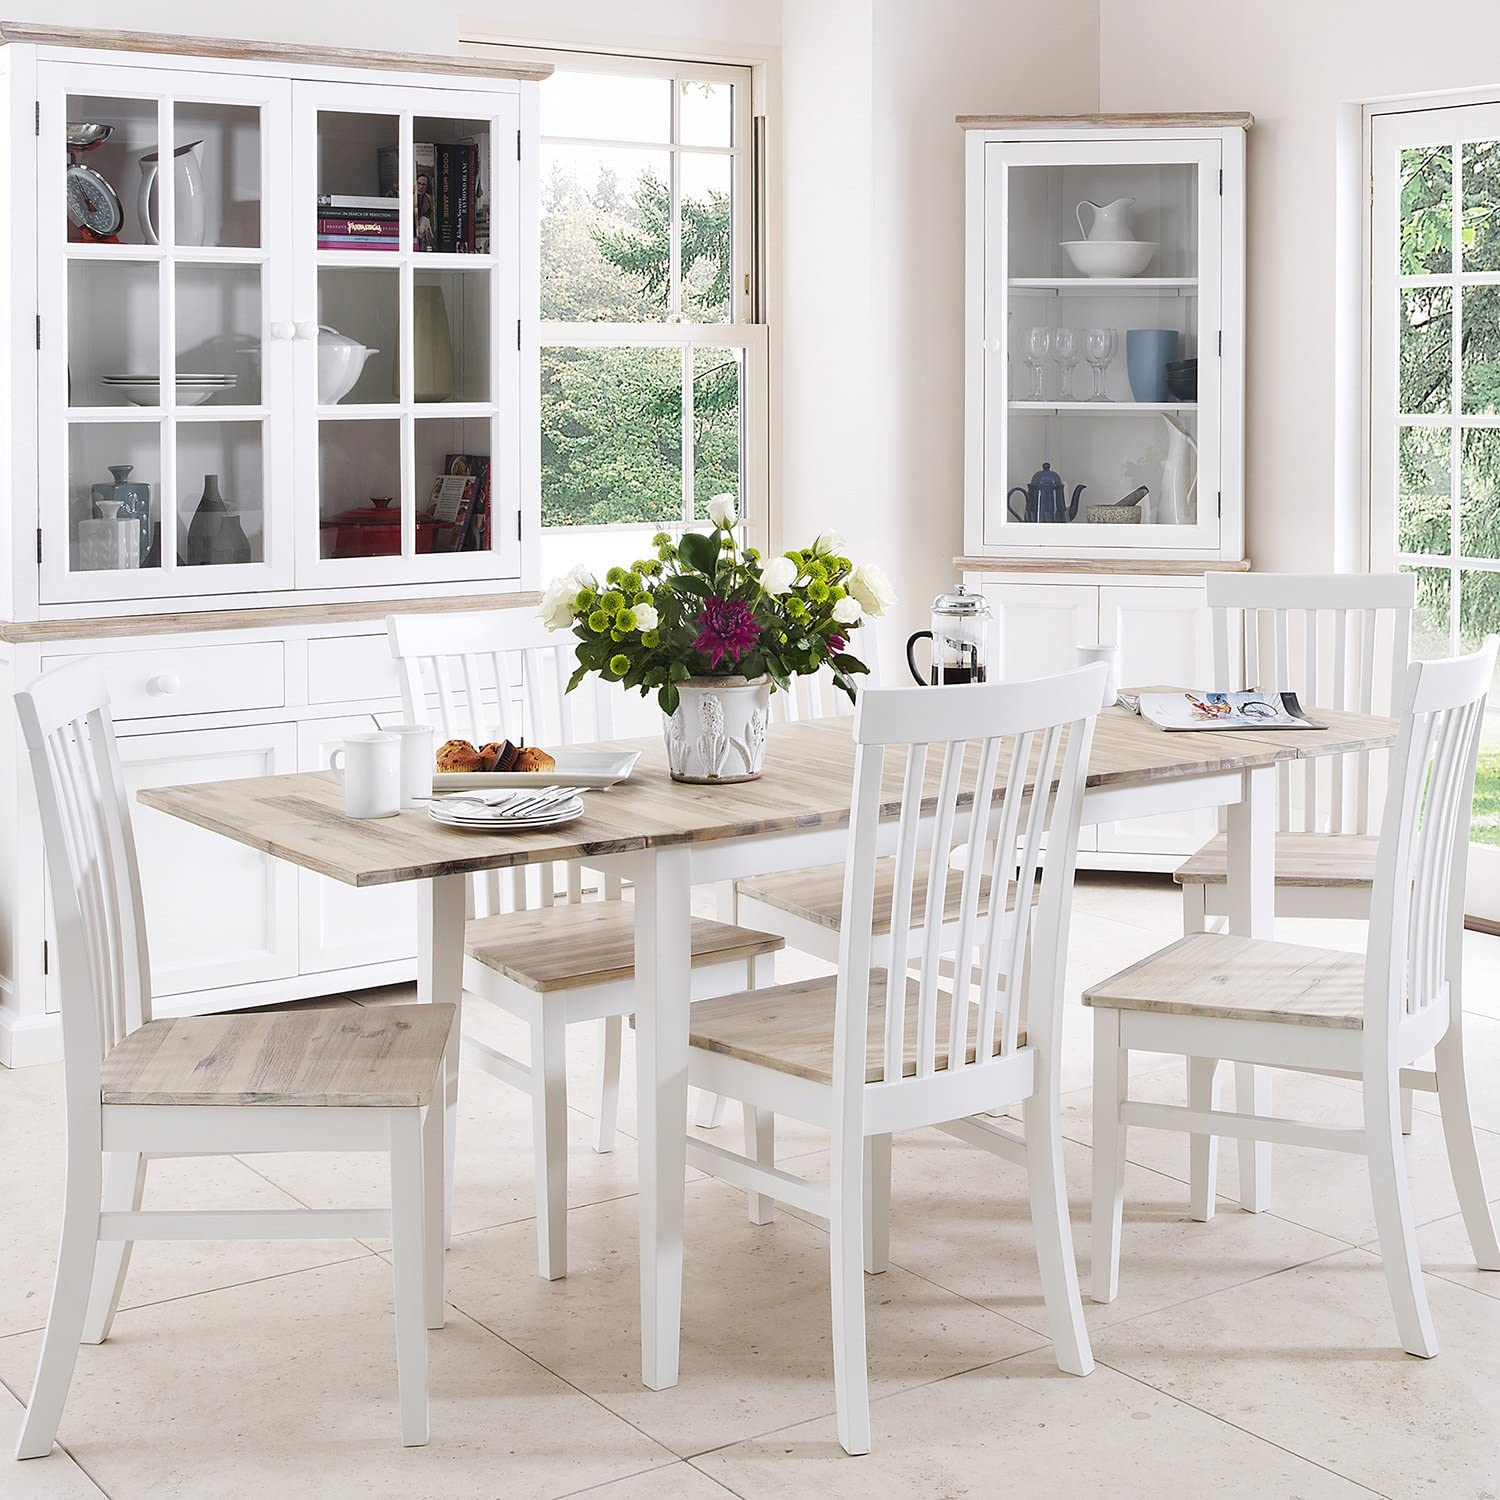 Florence Extending Table and 10 Chairs Set. Kitchen Dining Table and Chair  Set in White Colour with limed Hardwood Table top